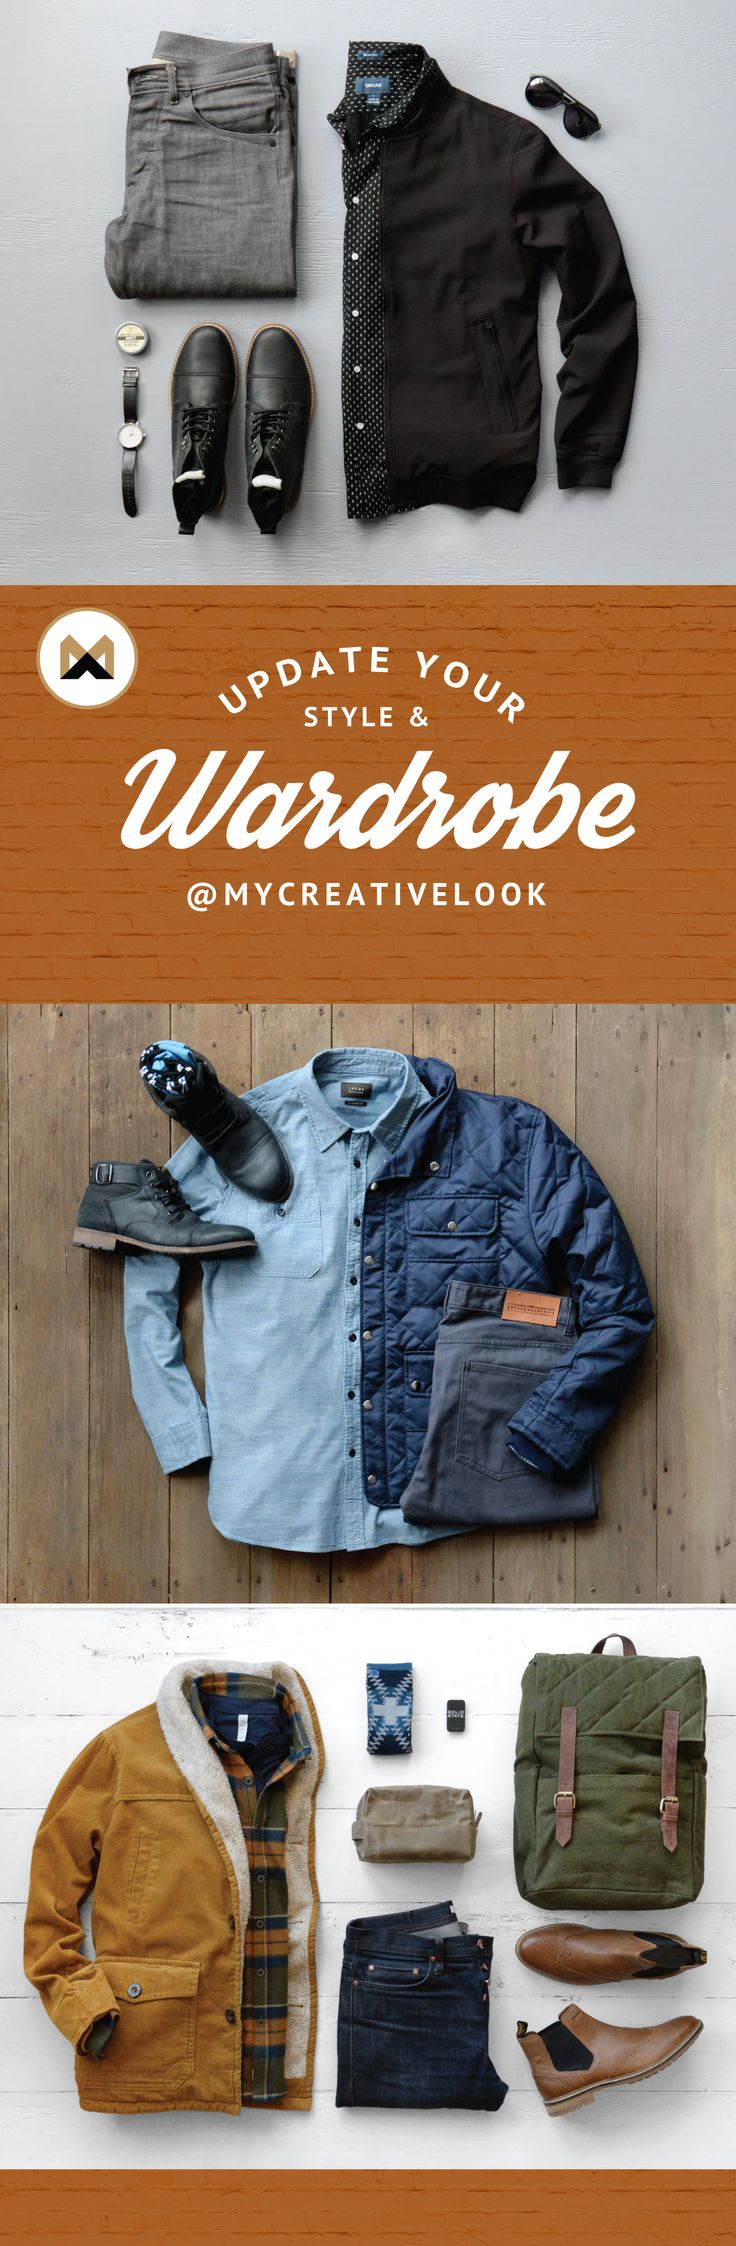 Update Your Style & Wardrobe by checking out Men's collections from MyCreativeLook | Casual Wear | Outfits | Fall Fashion | Boots, Sneakers and more. Visit mycreativelook.com/ #wardrobe #mensfashion #mensstyle #grid #clothinggrids